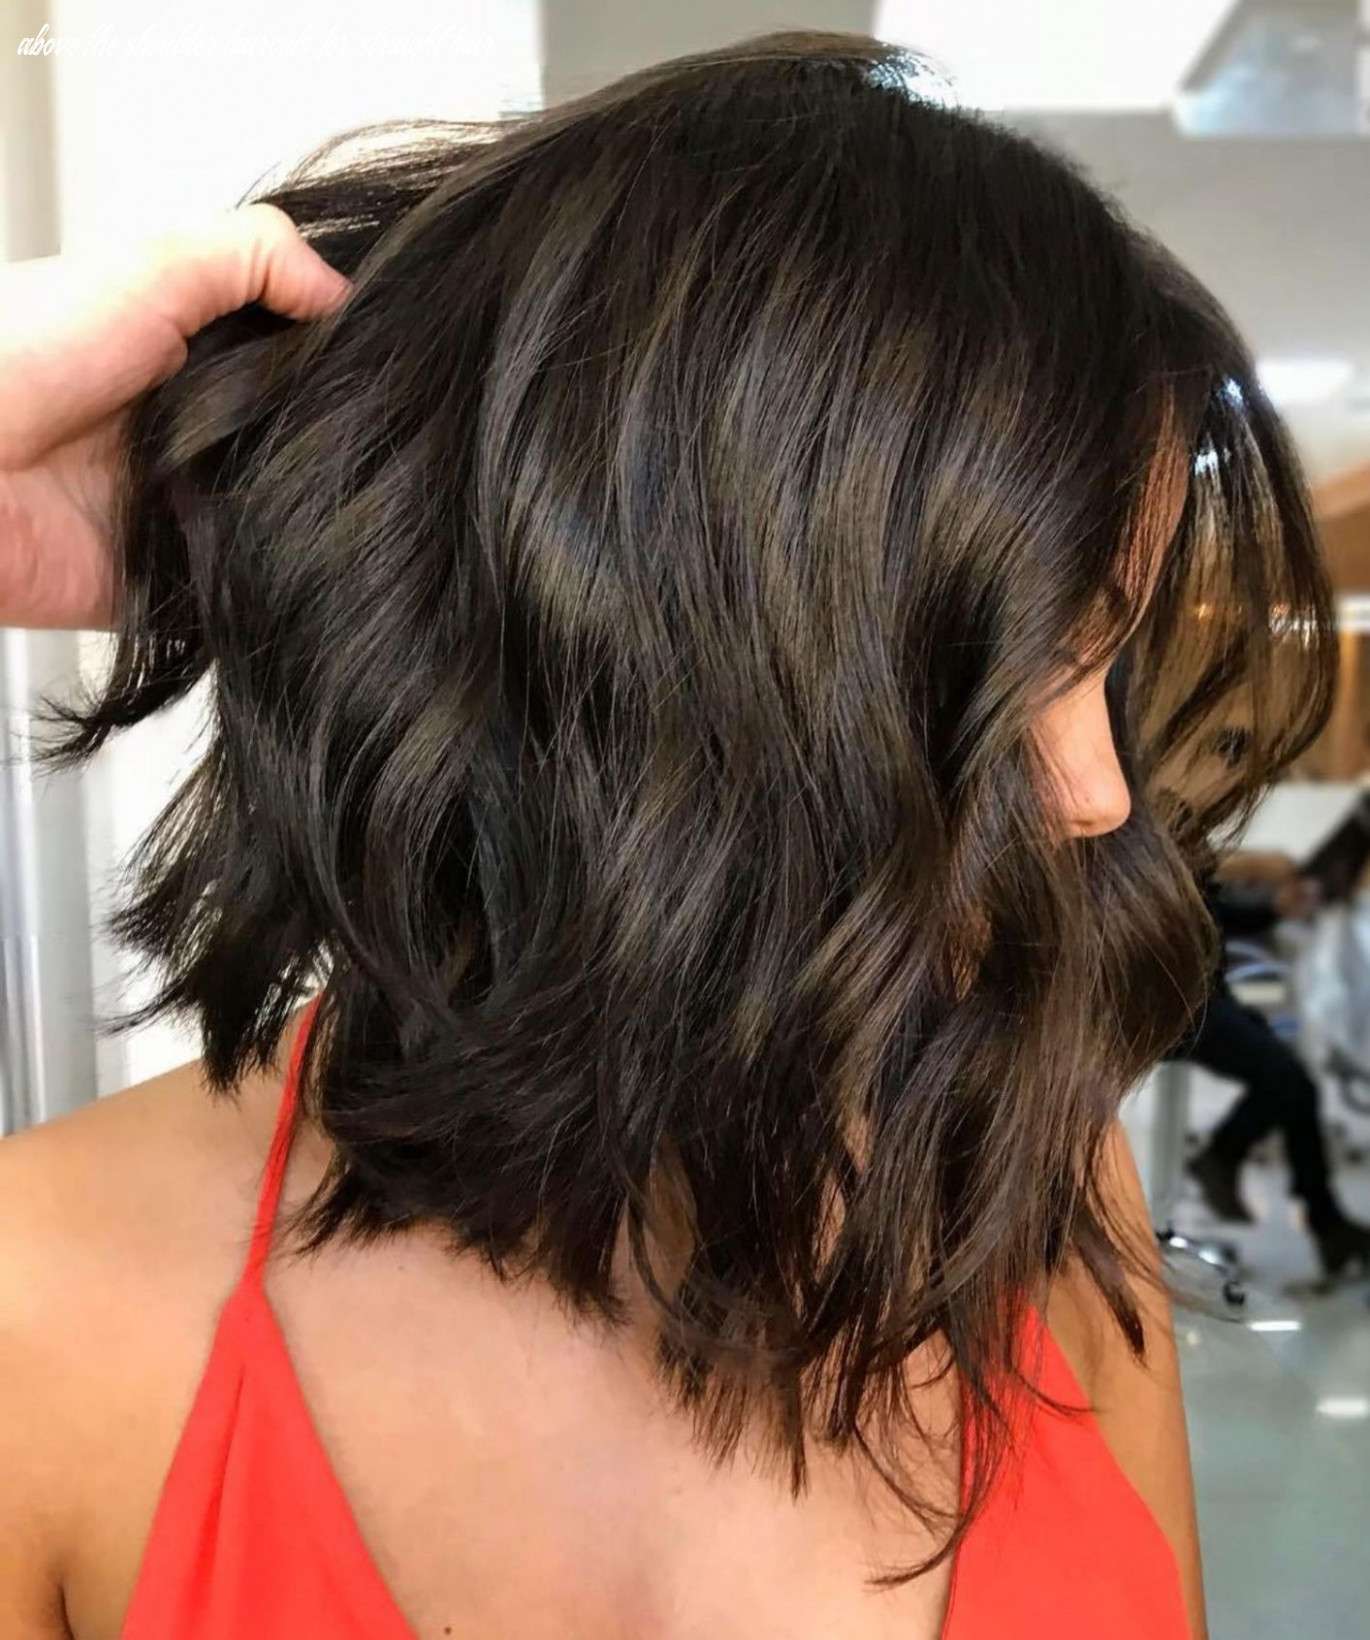 Pin on hair above the shoulder haircuts for straight hair